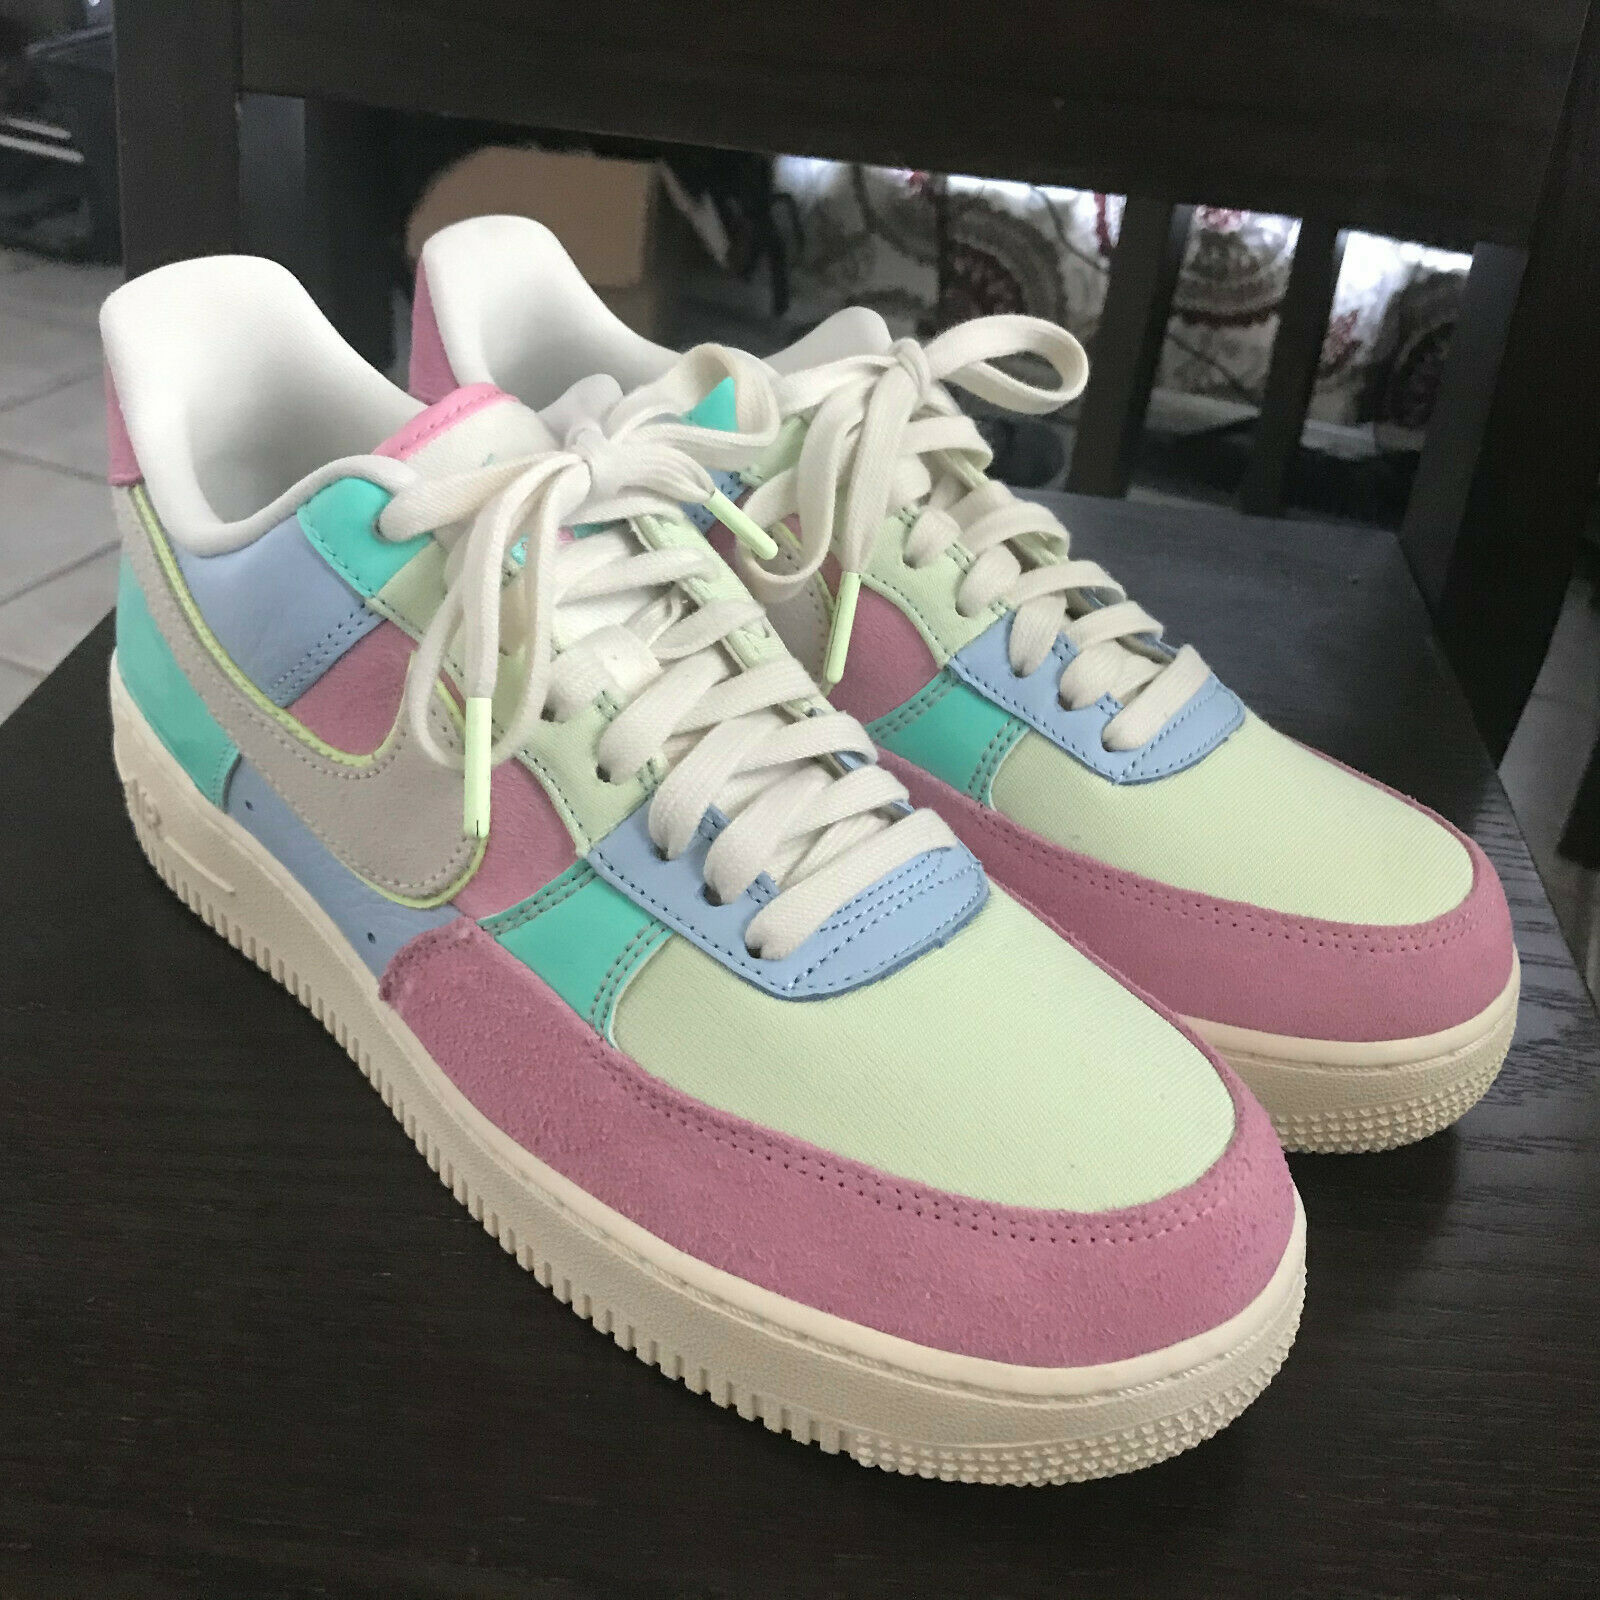 Nike Air Force 1 Low 07 QS Easter Ice